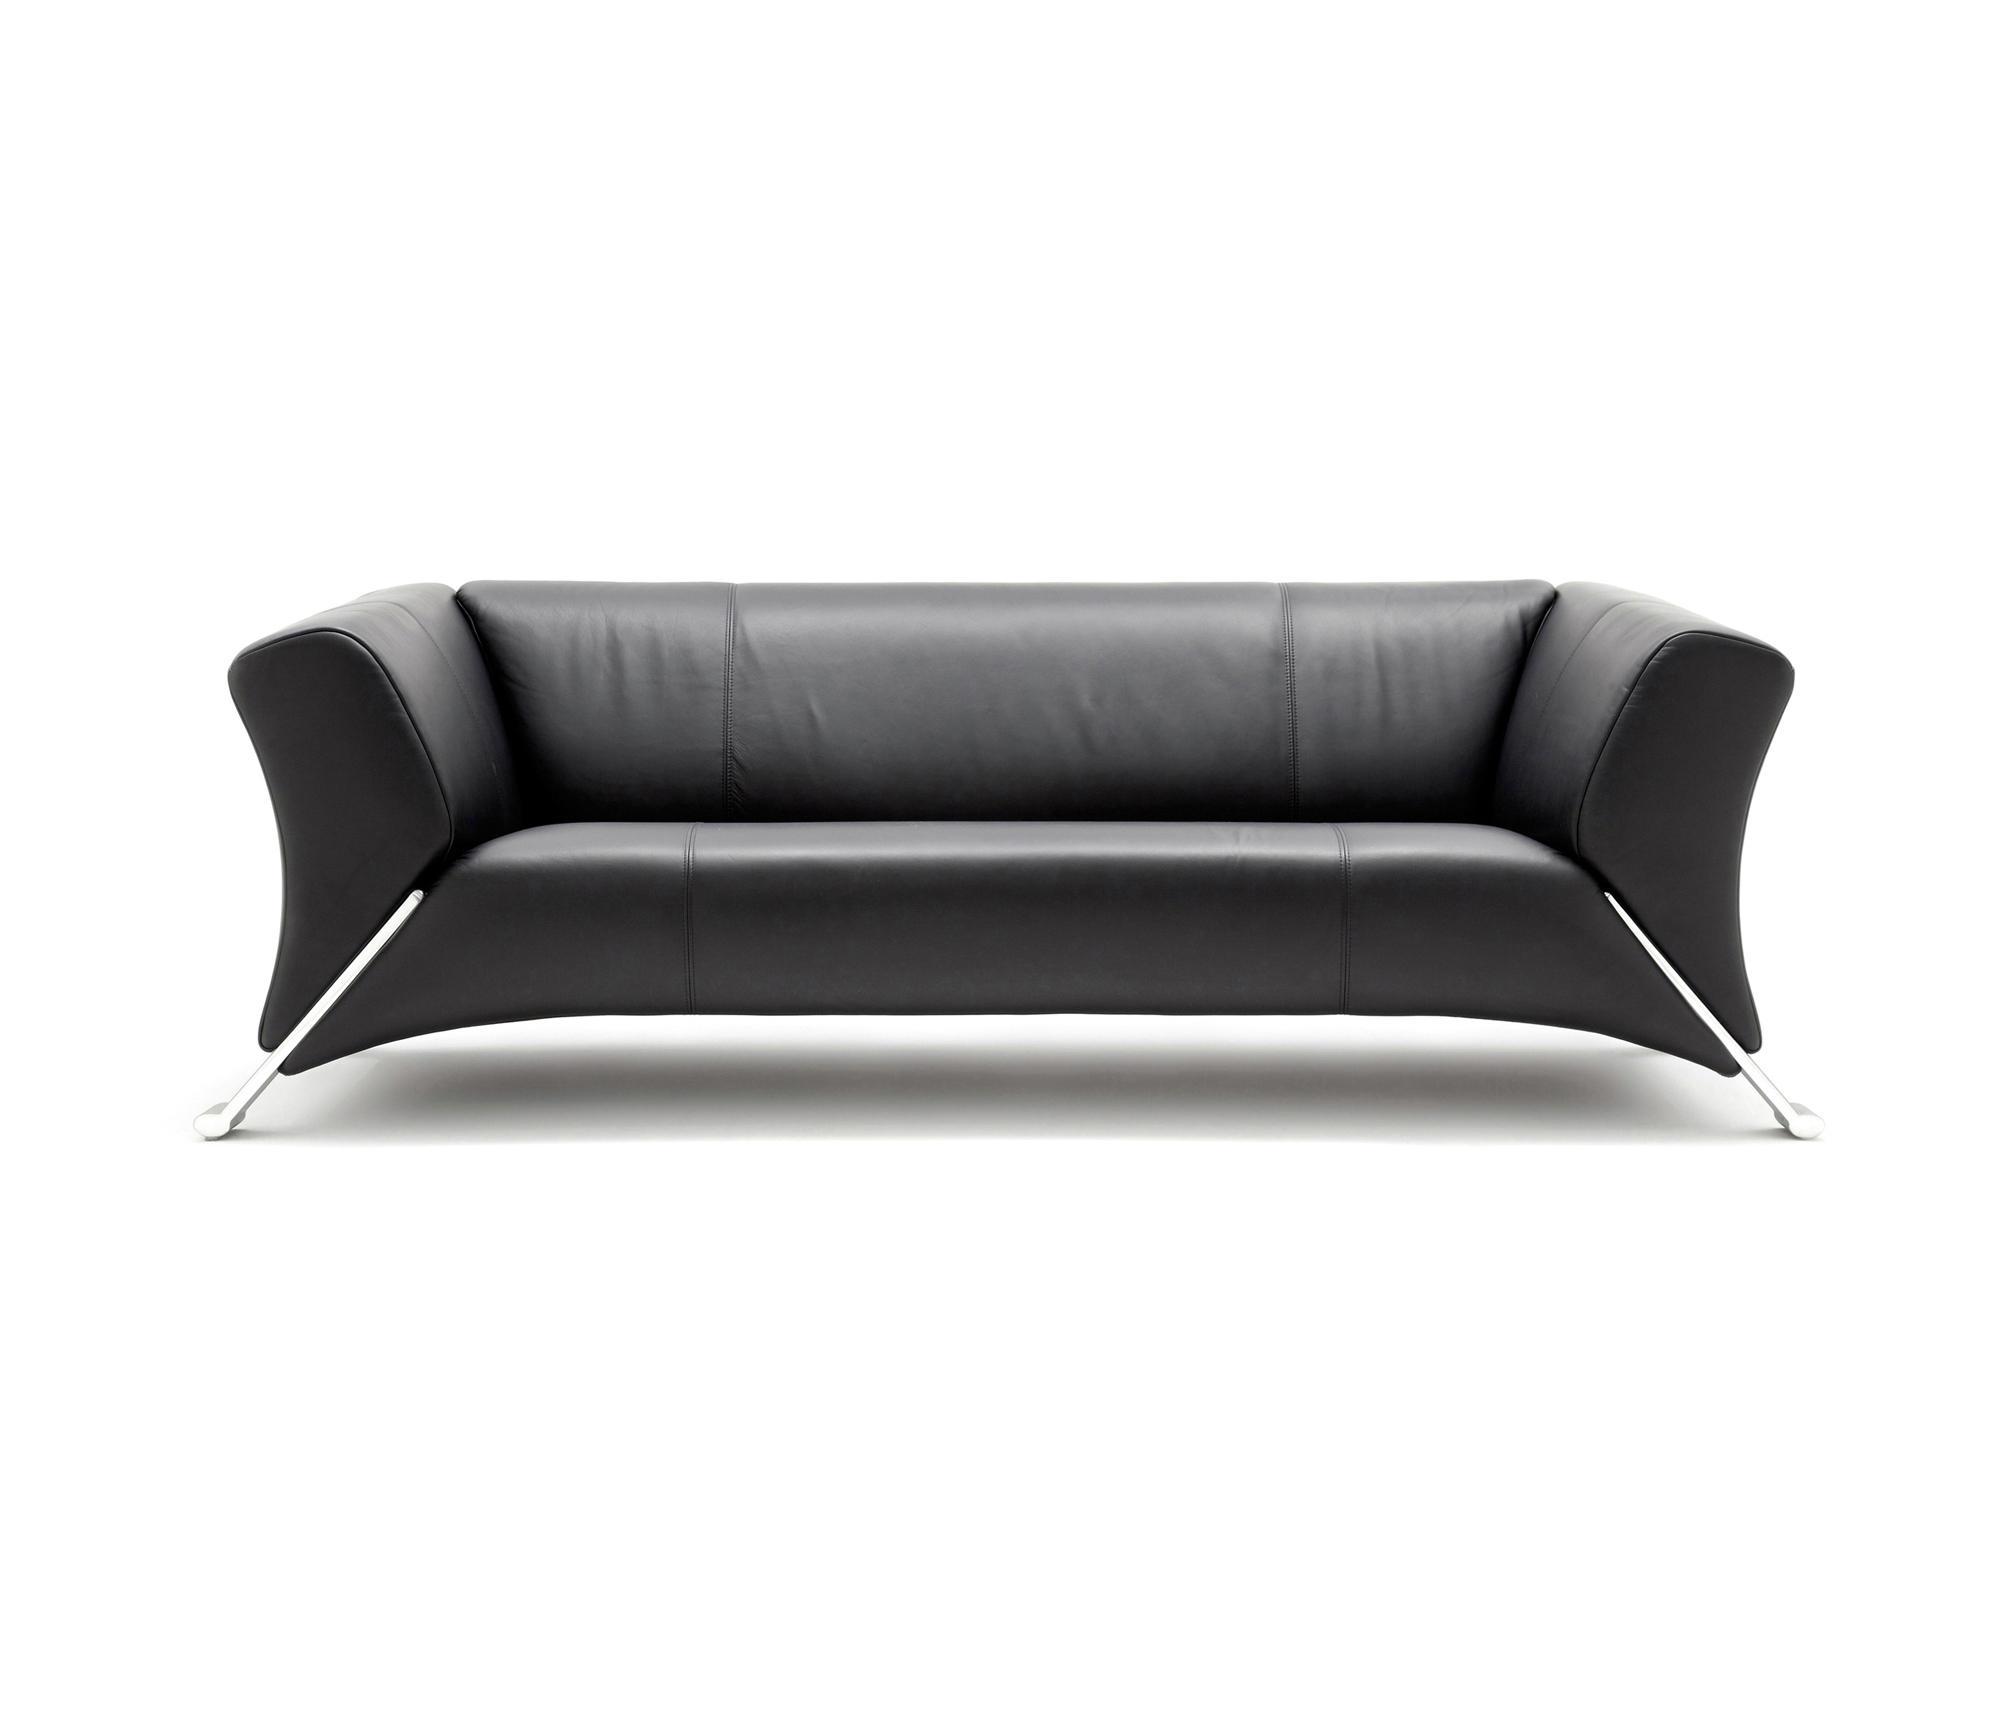 Rolf Benz 322 Sessel Rolf Benz 322 Sofas From Rolf Benz Architonic